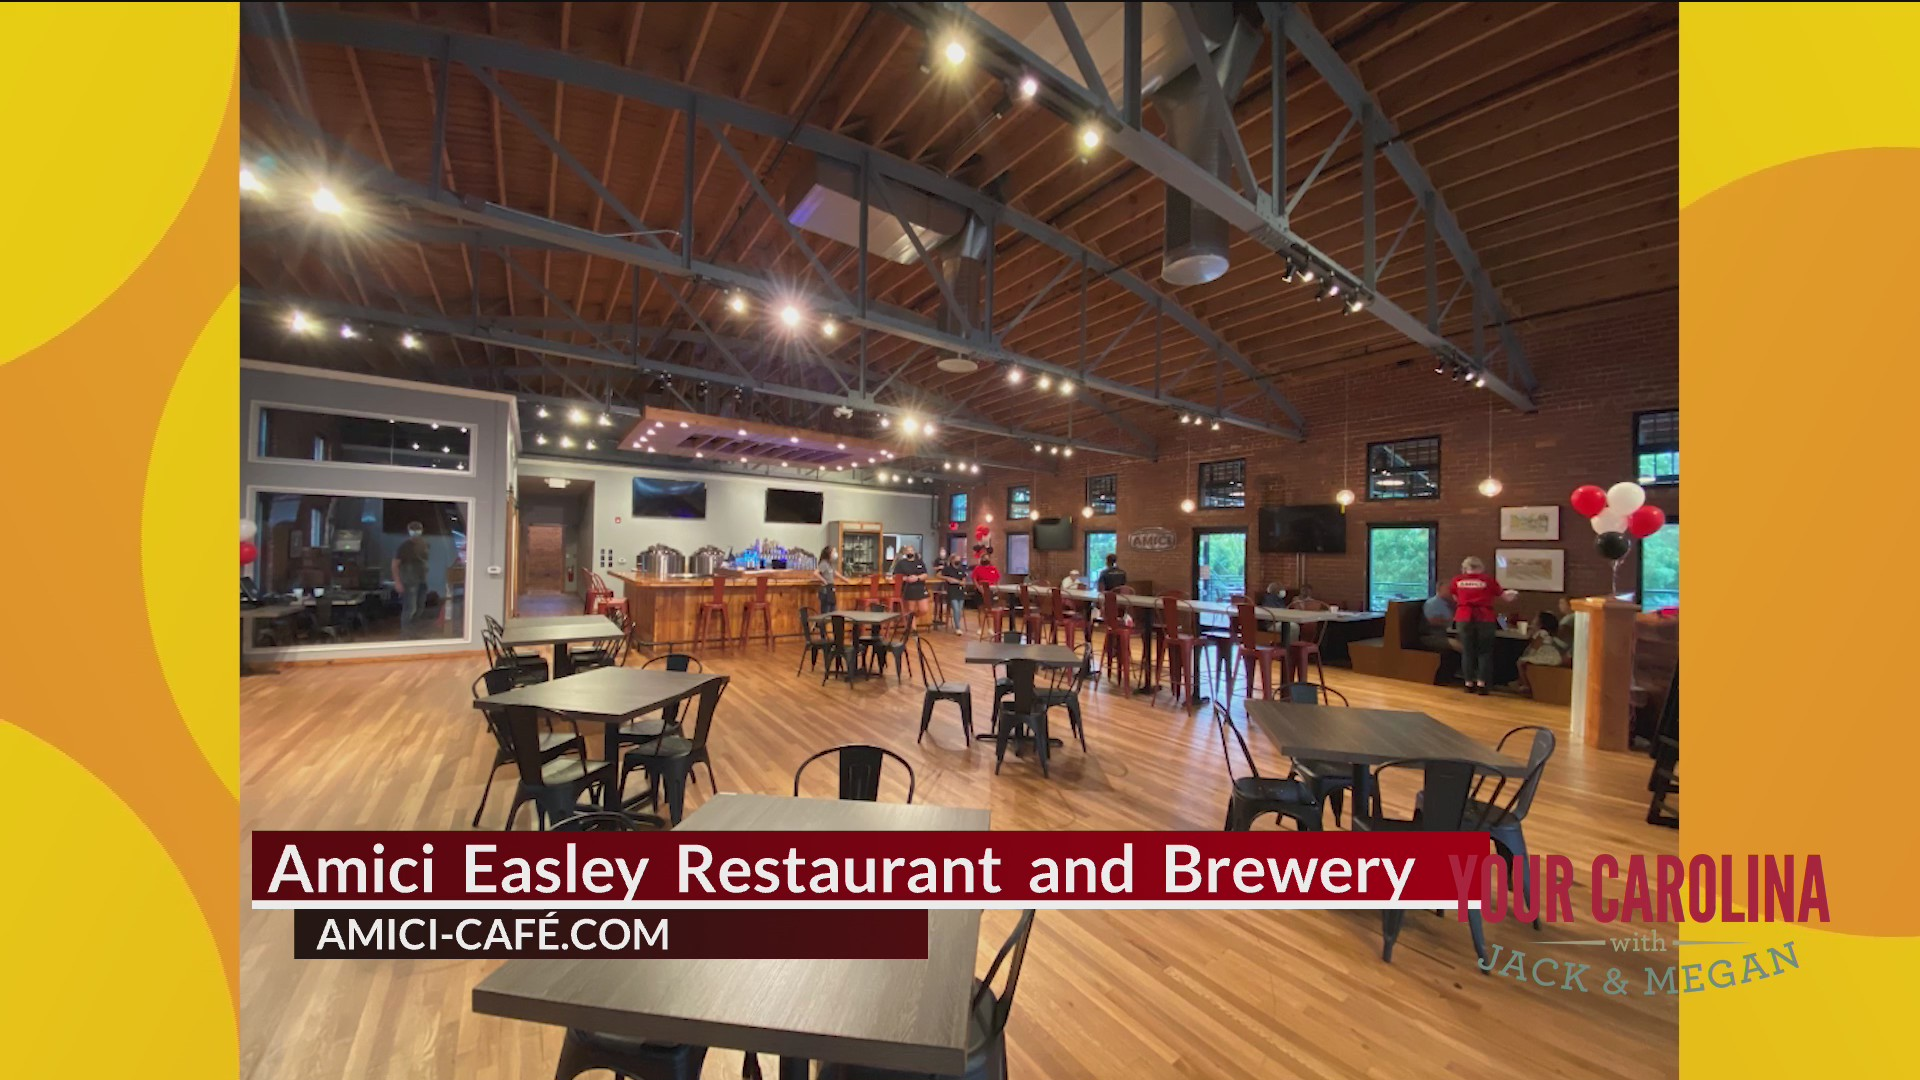 Amici Easley Restaurant and Brewery